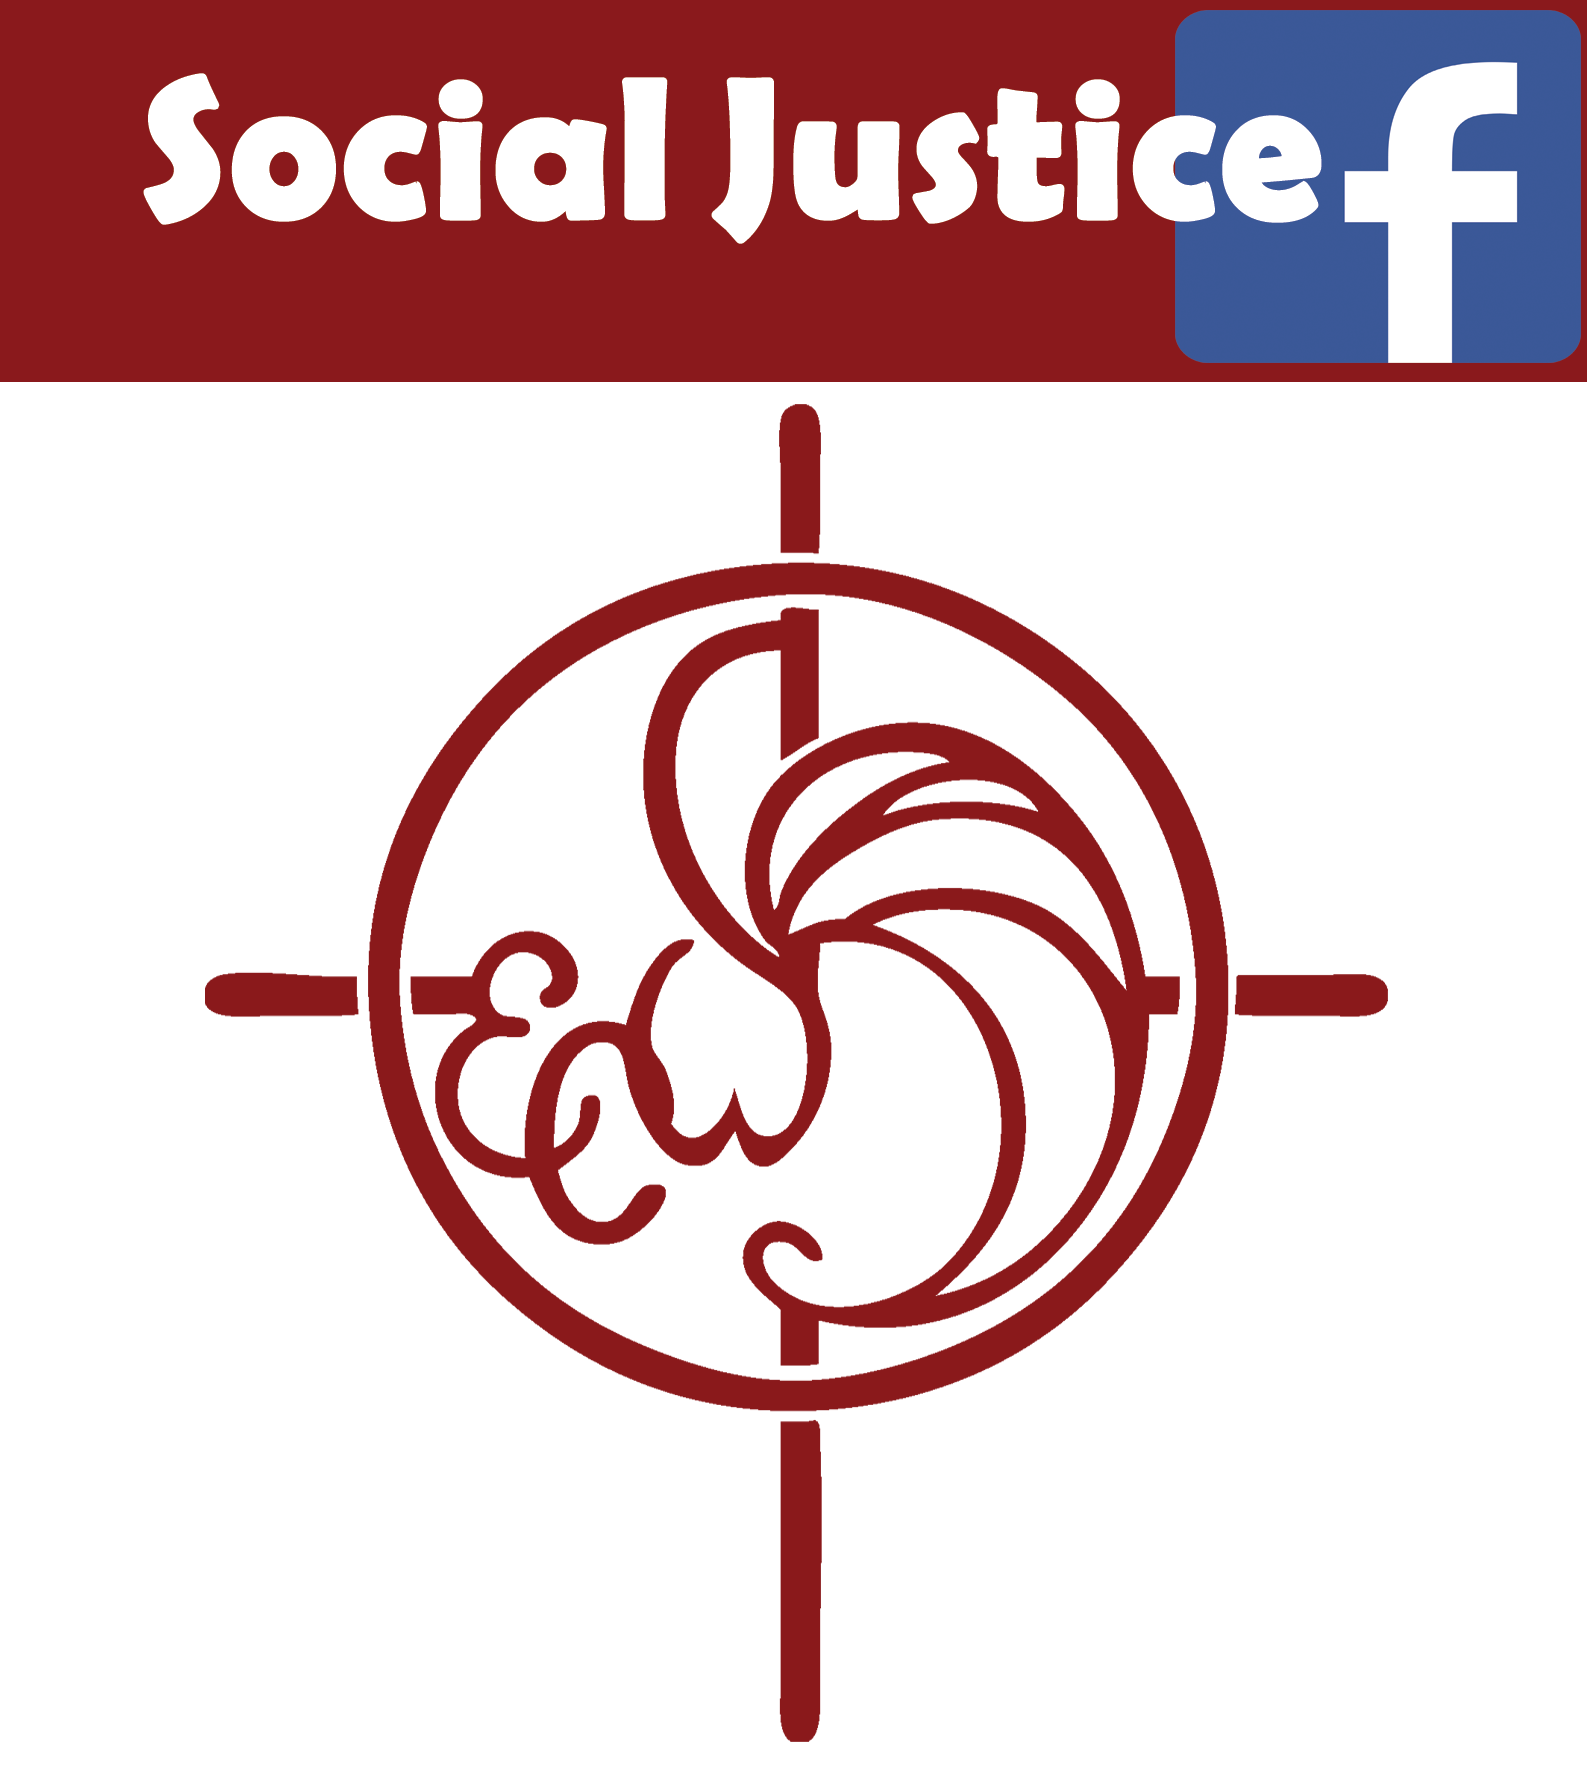 Social Justice - The Episcopal Church Women have a long history of championing social and political causes that support women and girls.We also discuss current issues at our Social Justice at National Episcopal Church Women — Facebook page.